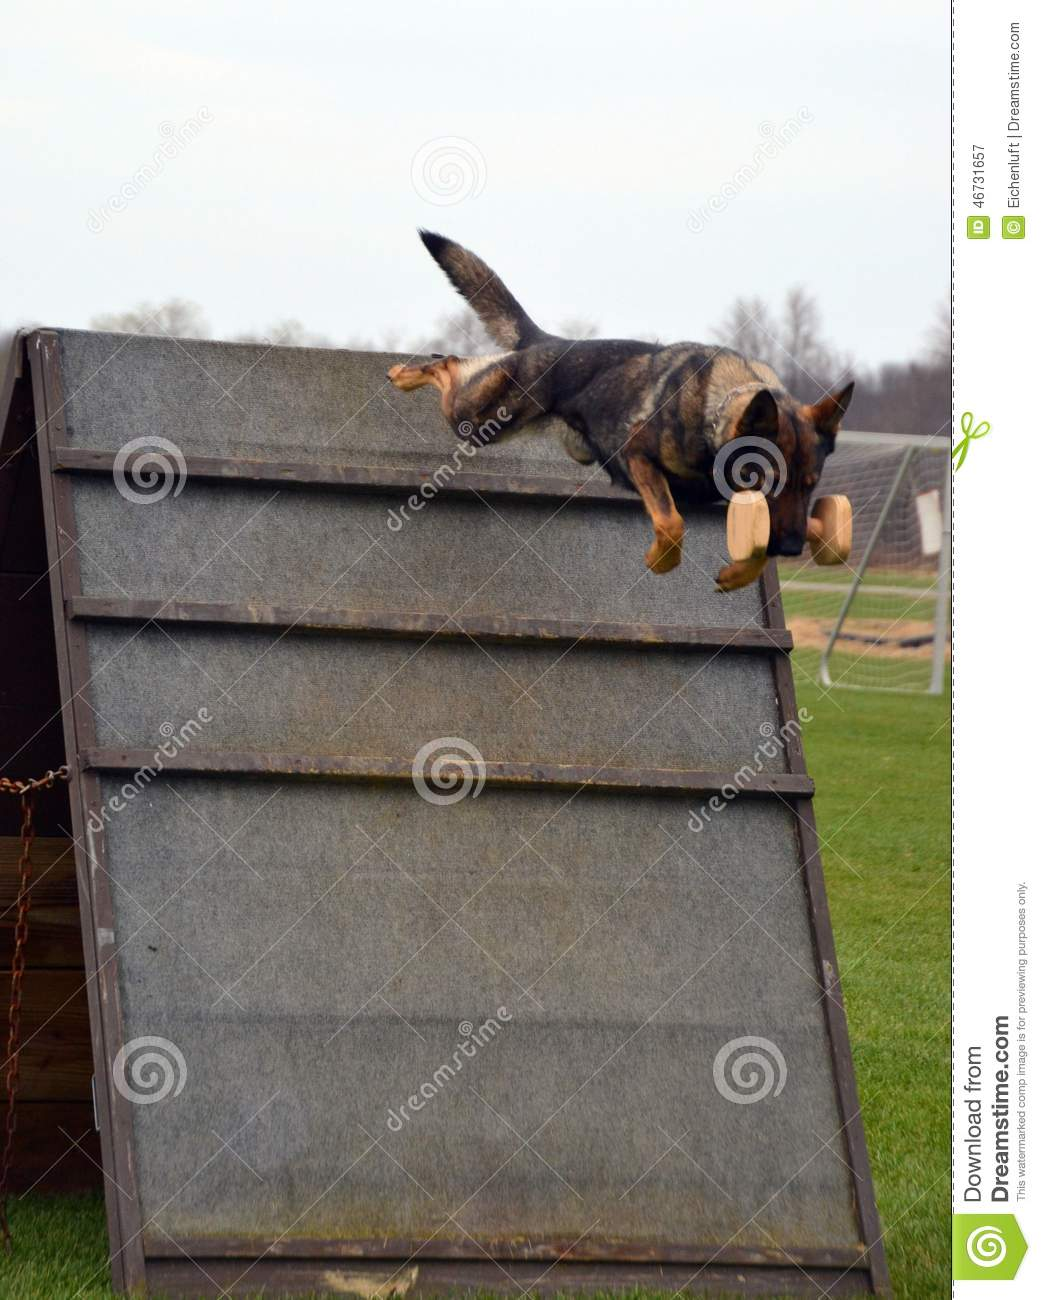 Dogs 050 stock image  Image of jump, dumbbell, dogs, retrieving